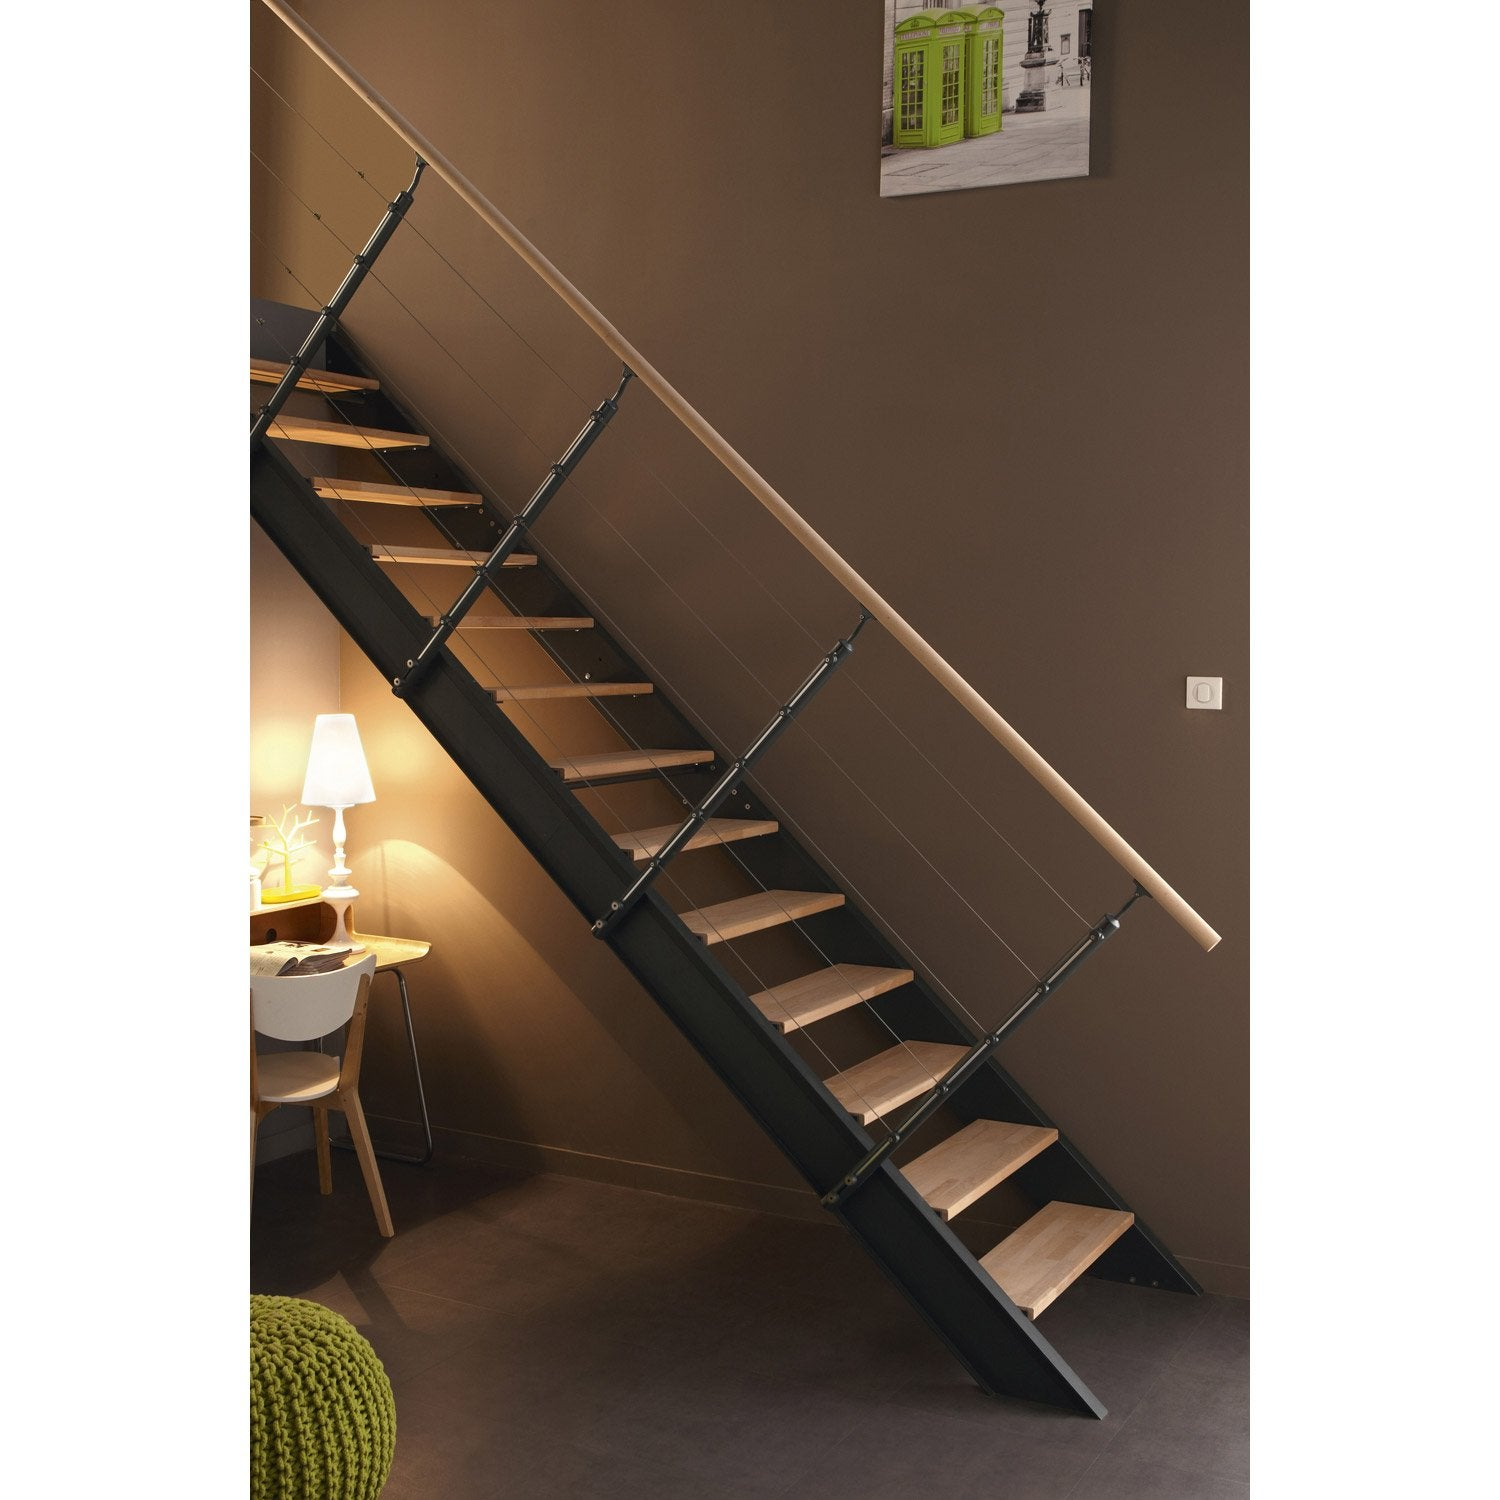 Pin marche en bois structure m tallique limon central - Marche escalier leroy merlin ...